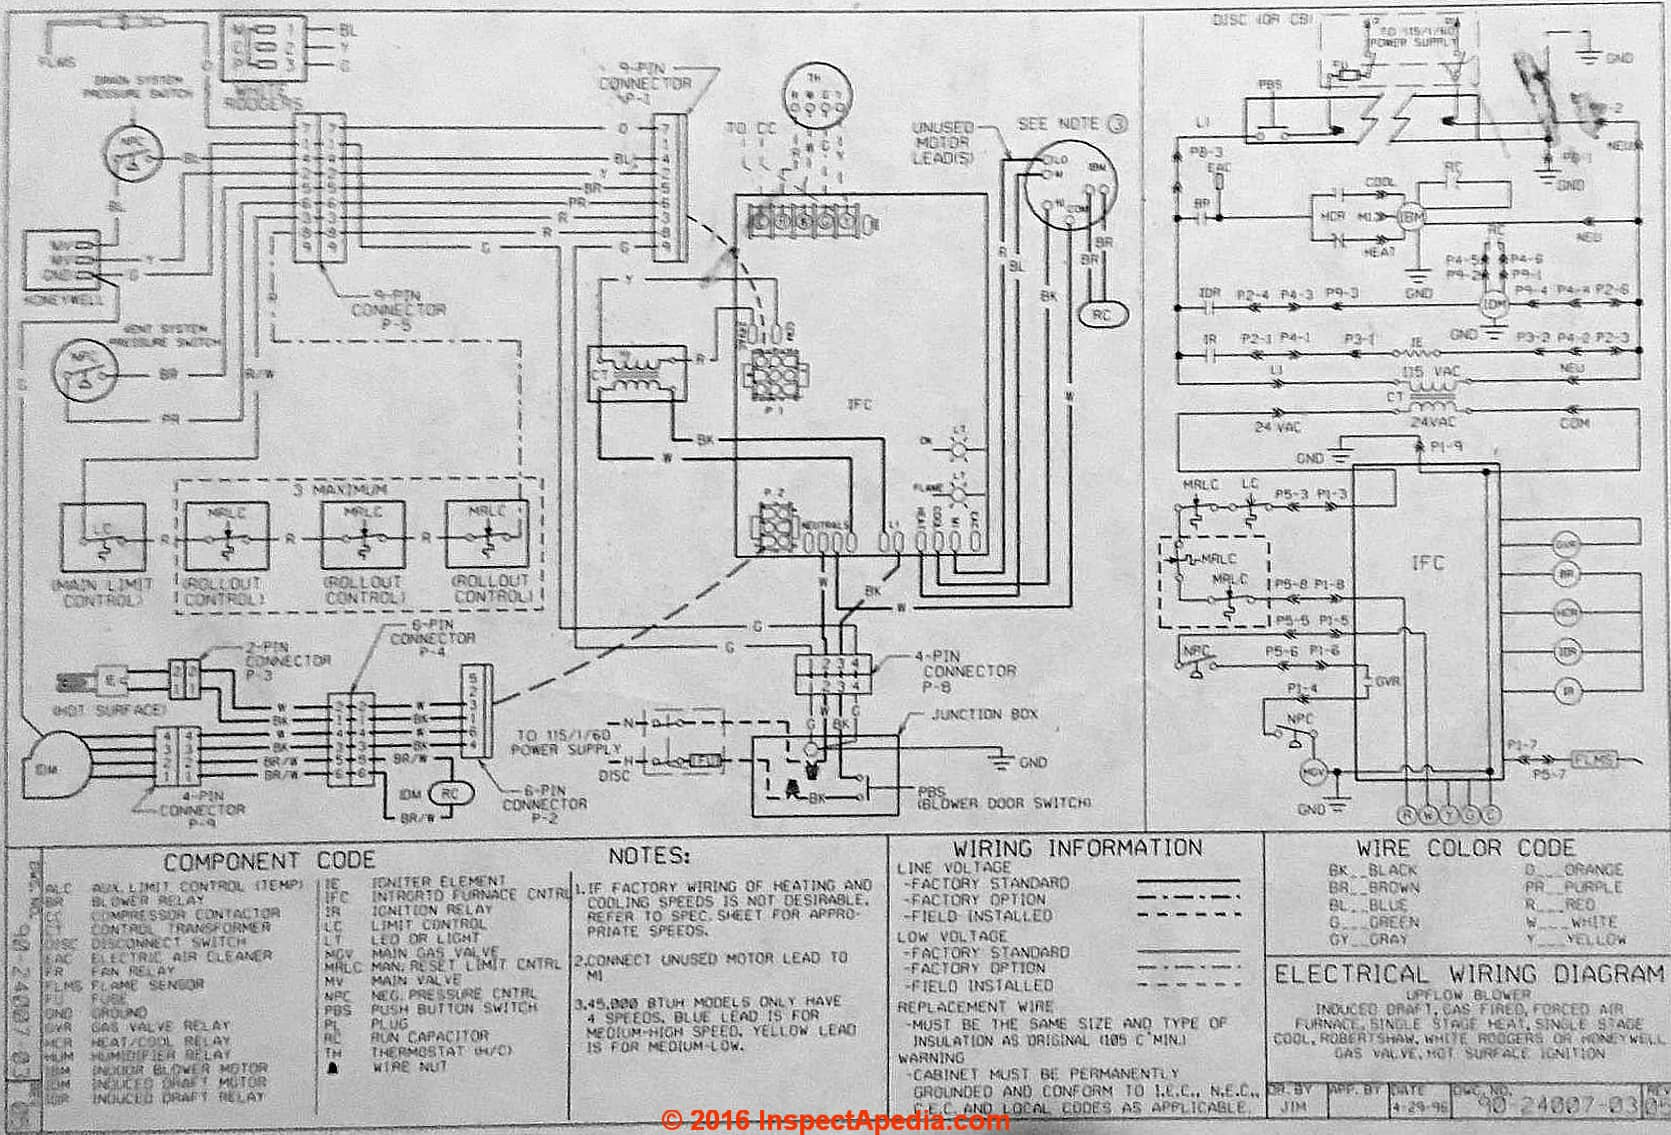 Rheem_AHU_Wiring_Diagram_IAP air conditioner heat pump faqs york rooftop unit wiring diagram at creativeand.co